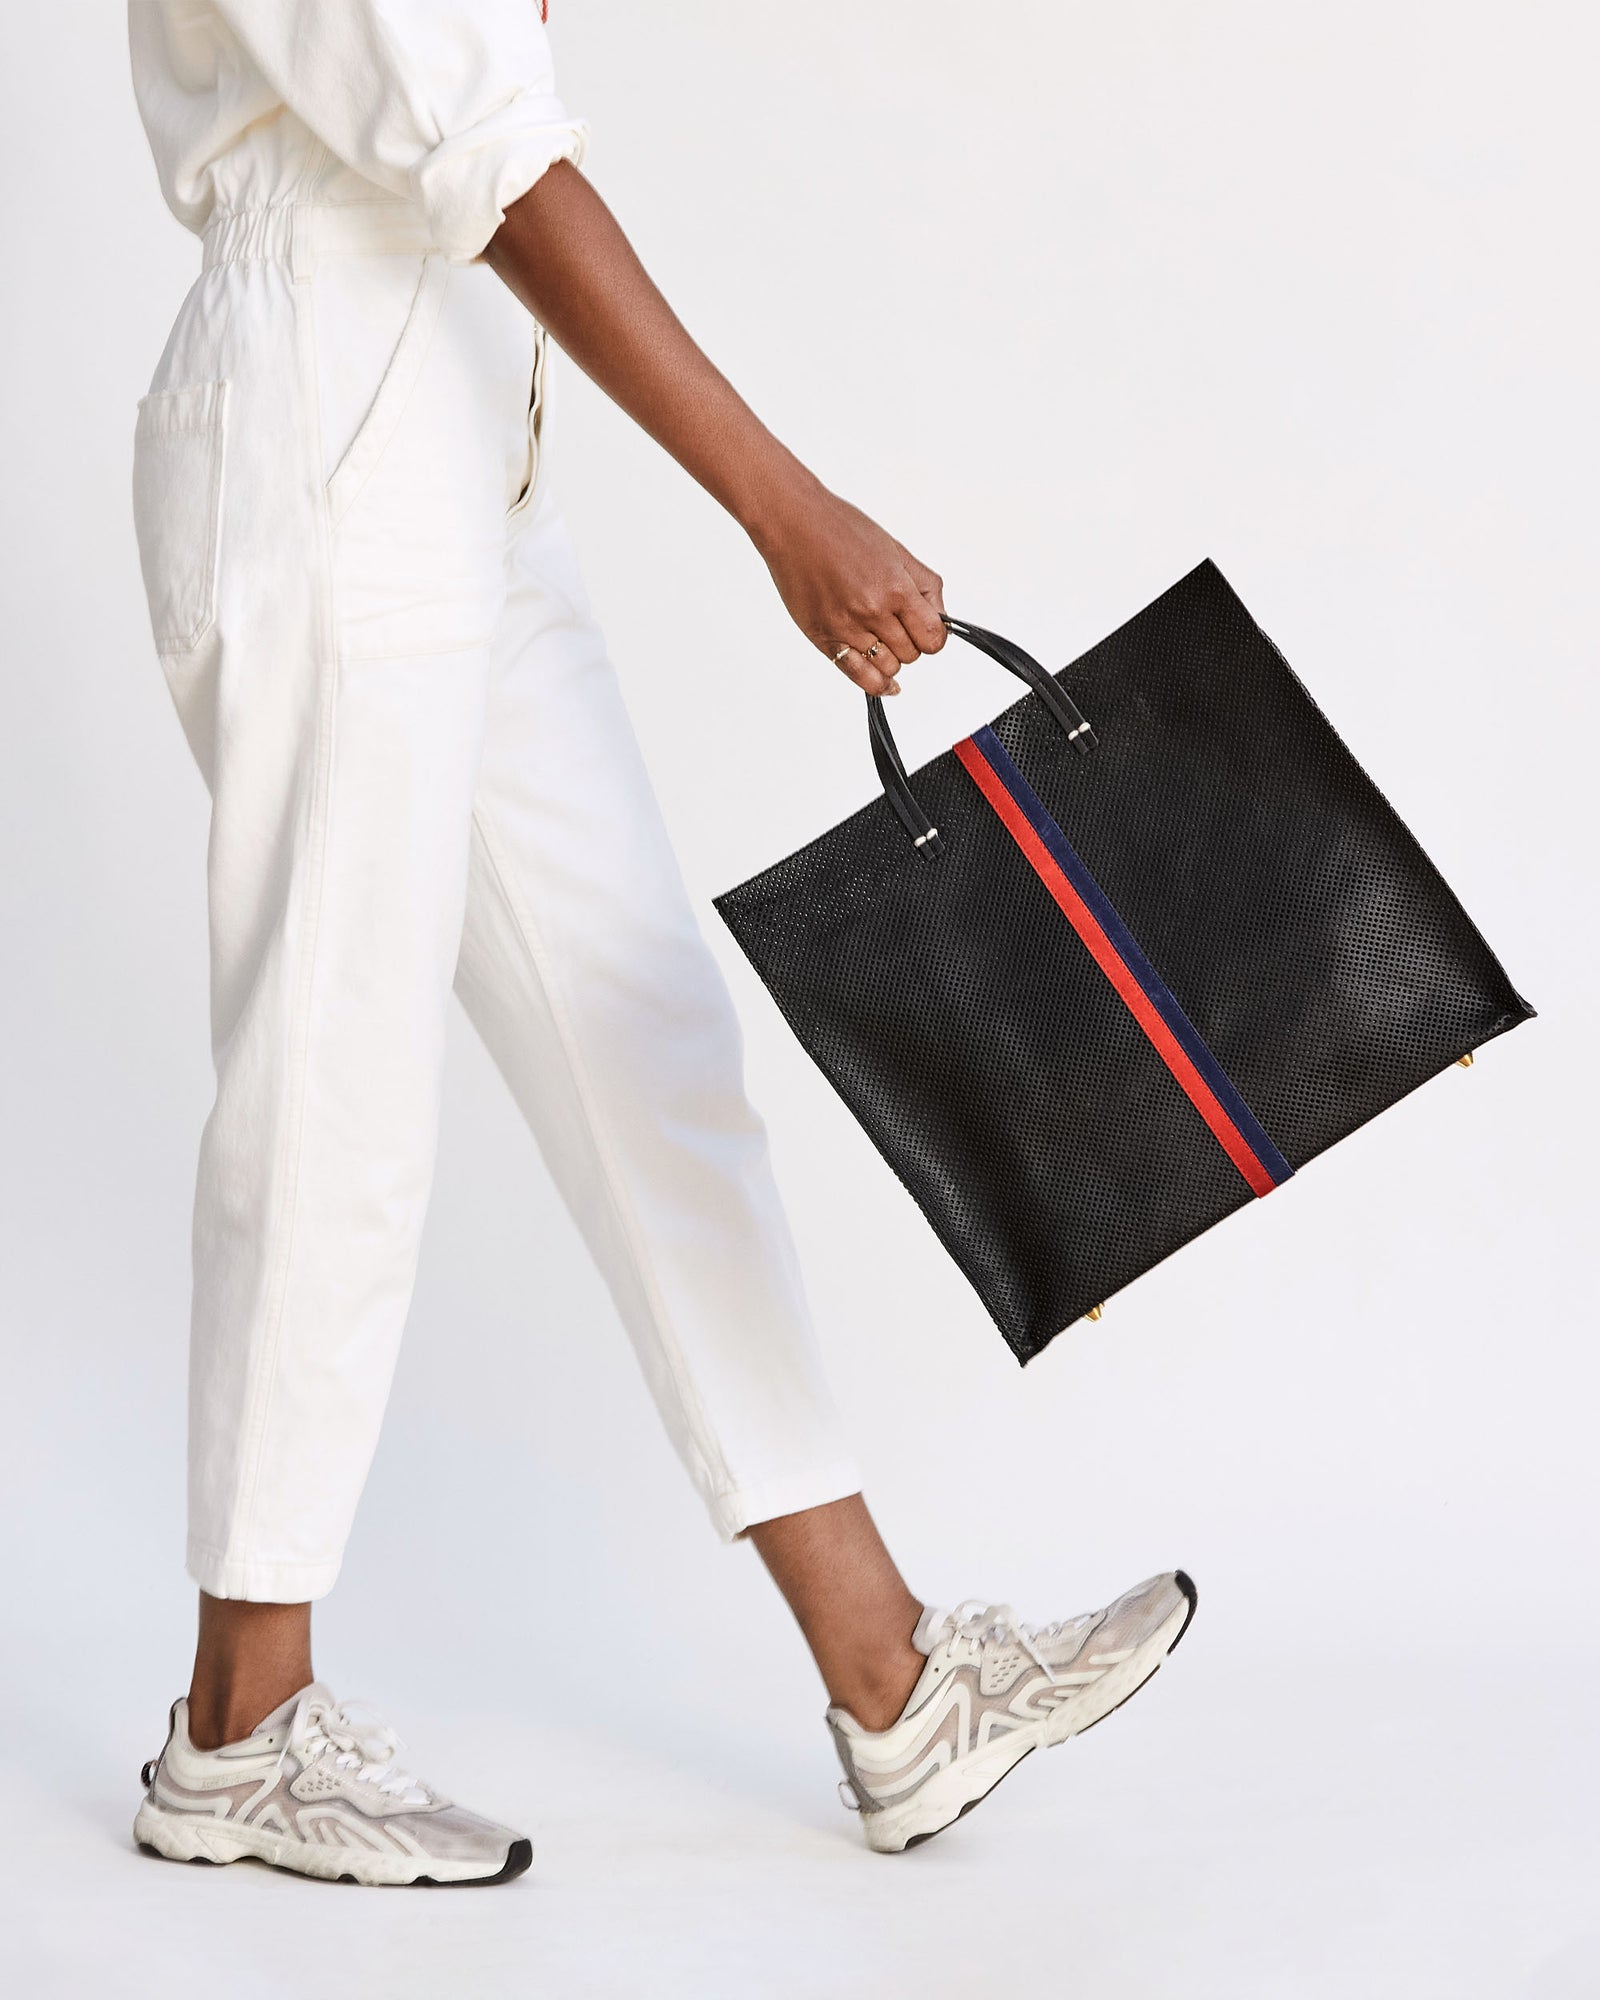 Black Perf with Navy & Red Desert Stripes Simple Tote on Mecca